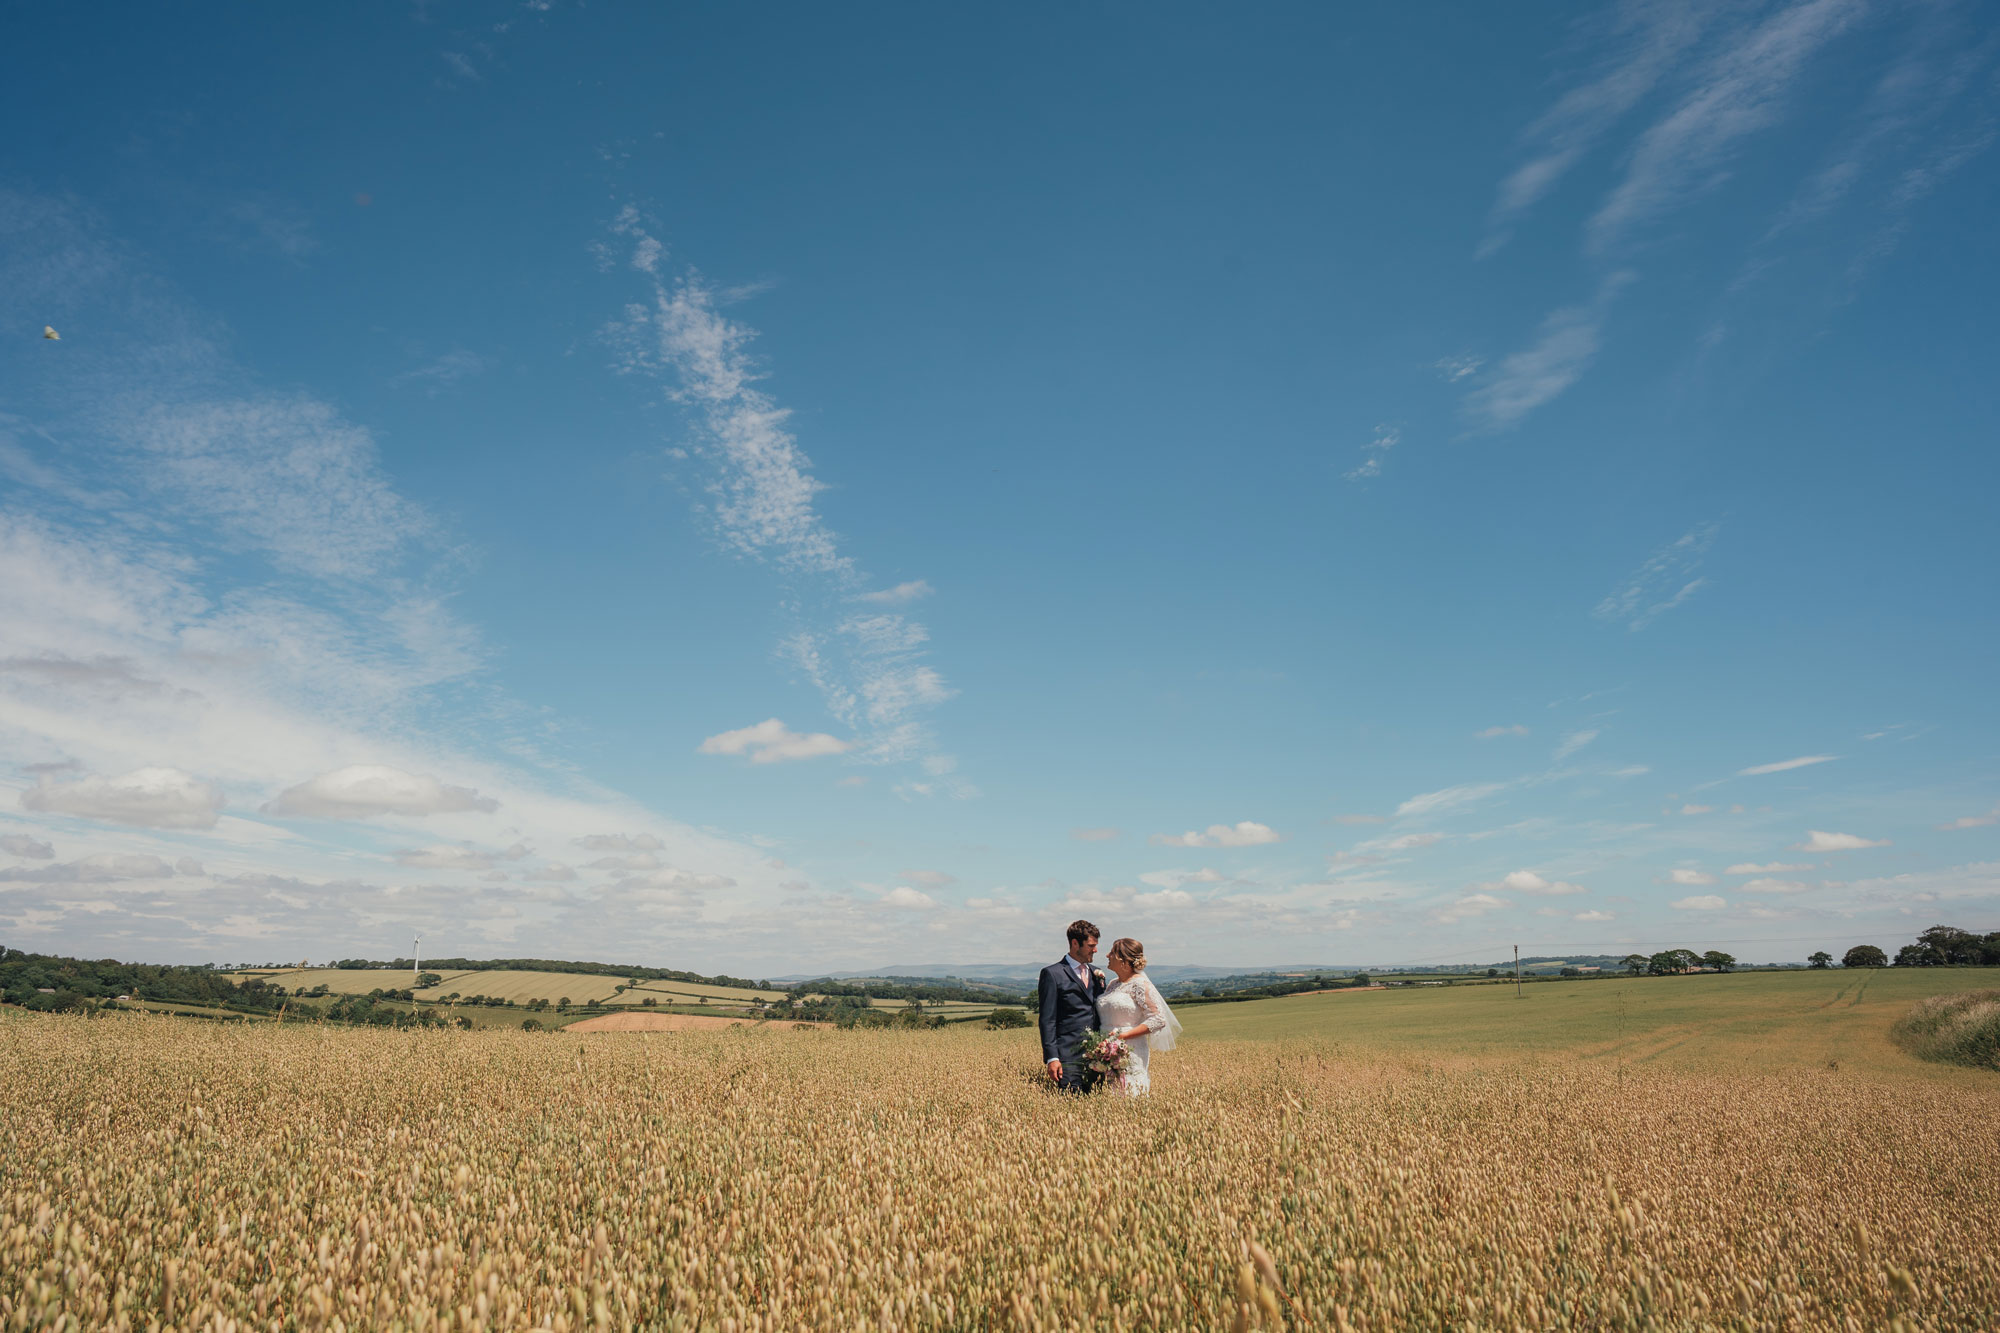 a wife and husband kiss in a Cornish field of corn on their wedding day